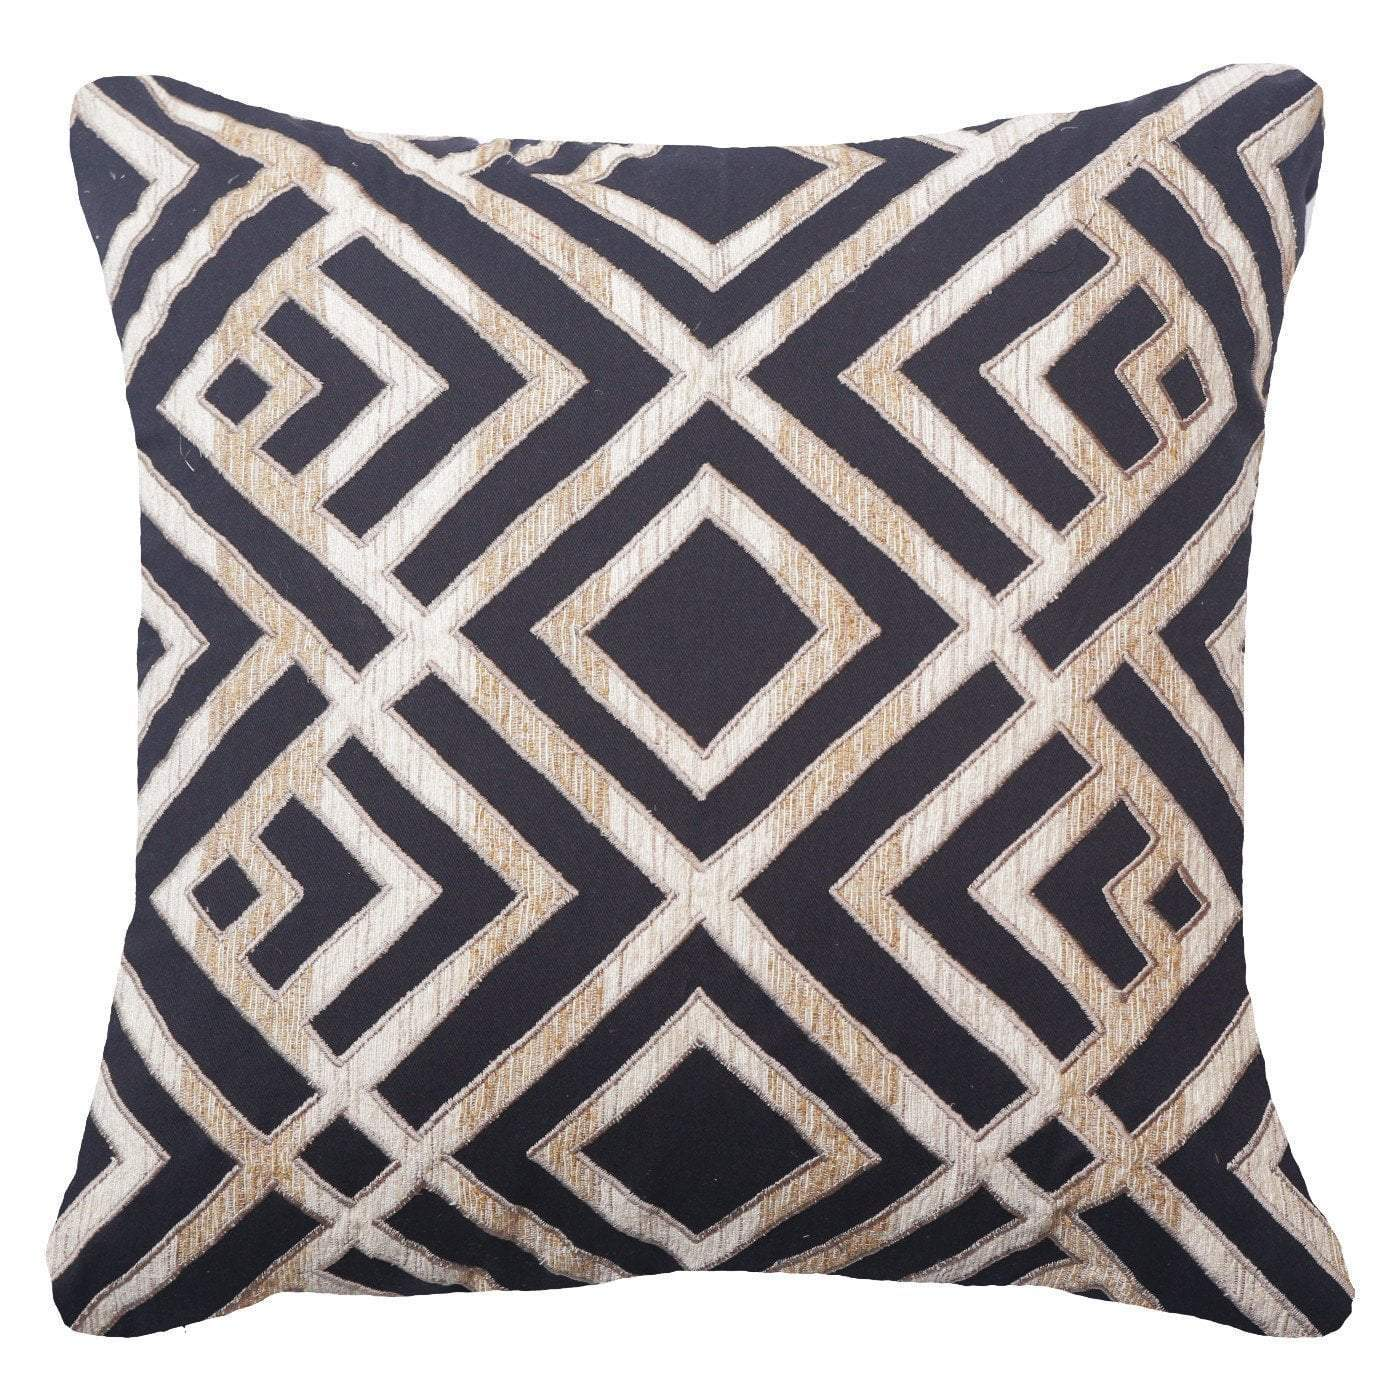 Shoowa Arrow Black Lounge Cushion 55 x 55 cm